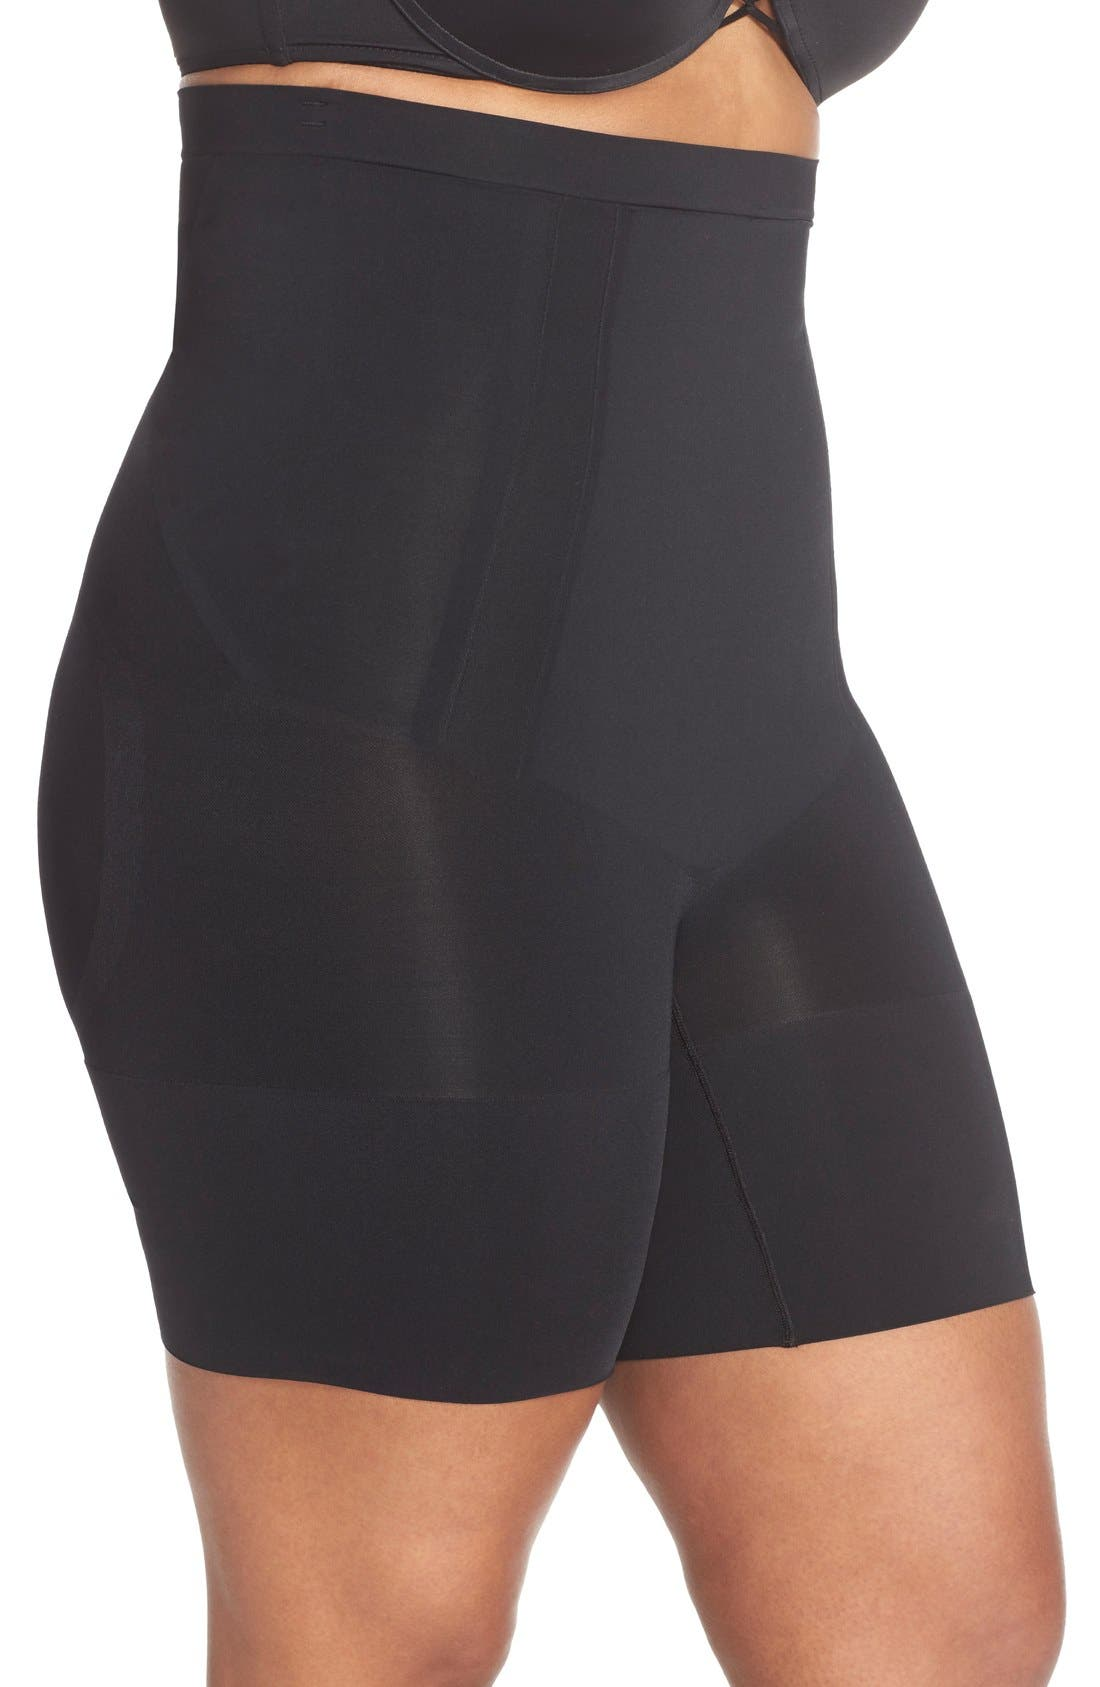 OnCore High Waist Mid-Thigh Shorts,                             Alternate thumbnail 3, color,                             VERY BLACK